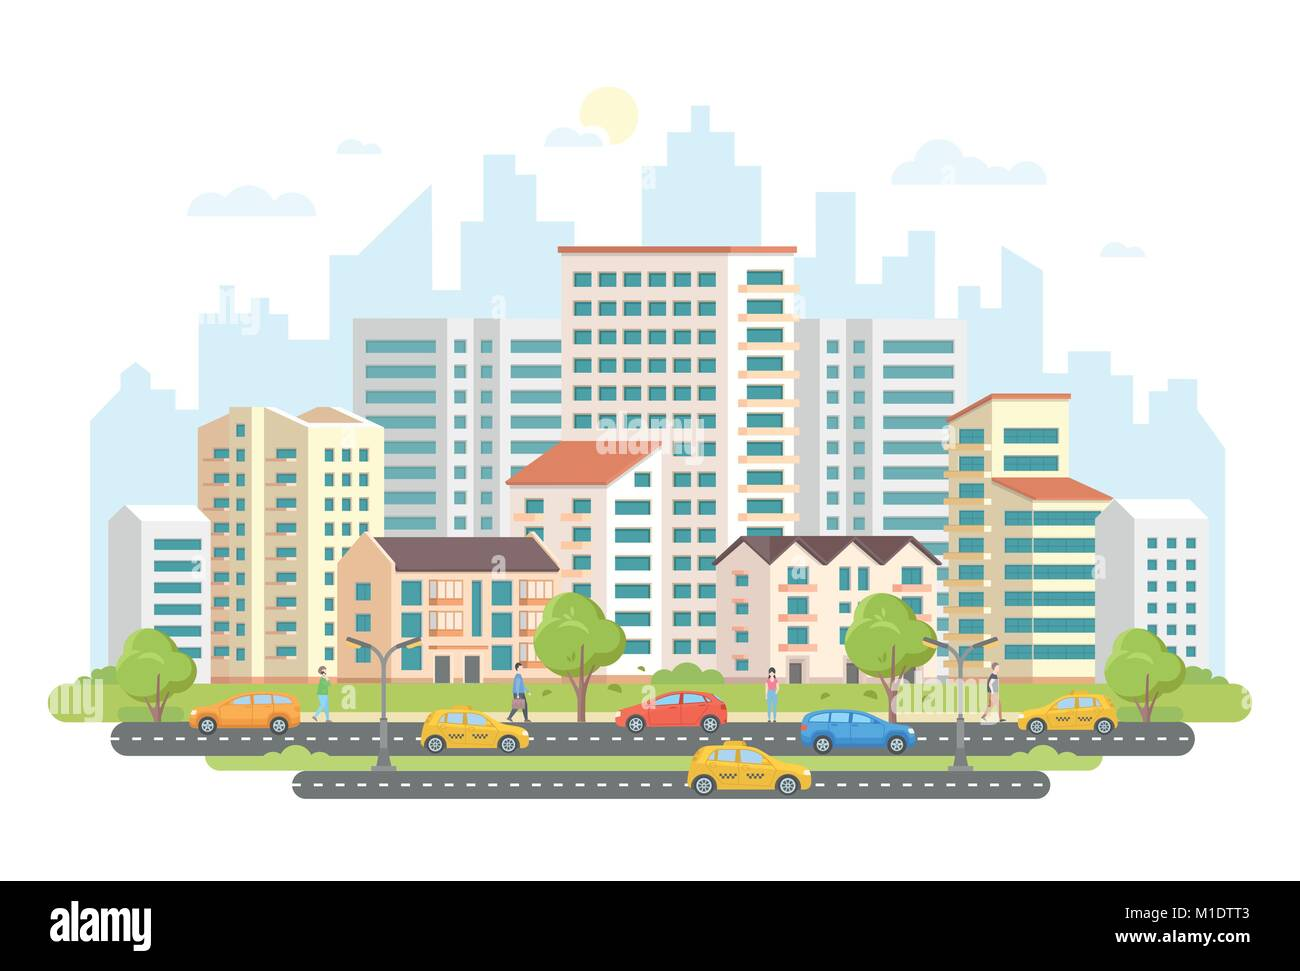 Busy street life - modern colorful flat vector illustration - Stock Vector